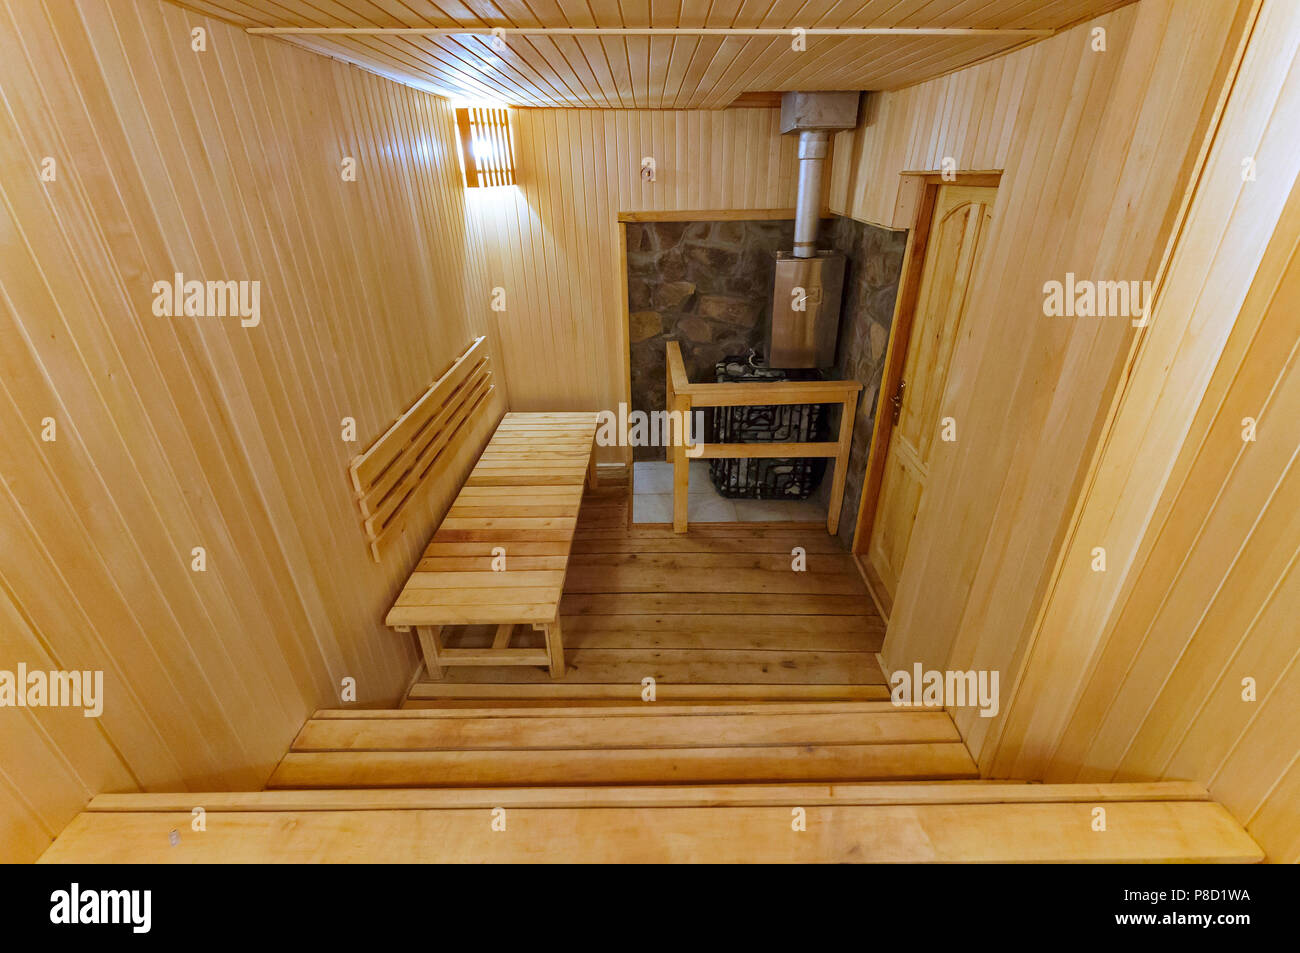 Beautiful and useful sauna with comfortable seats for sitting and lamps on the walls . For your design - Stock Image